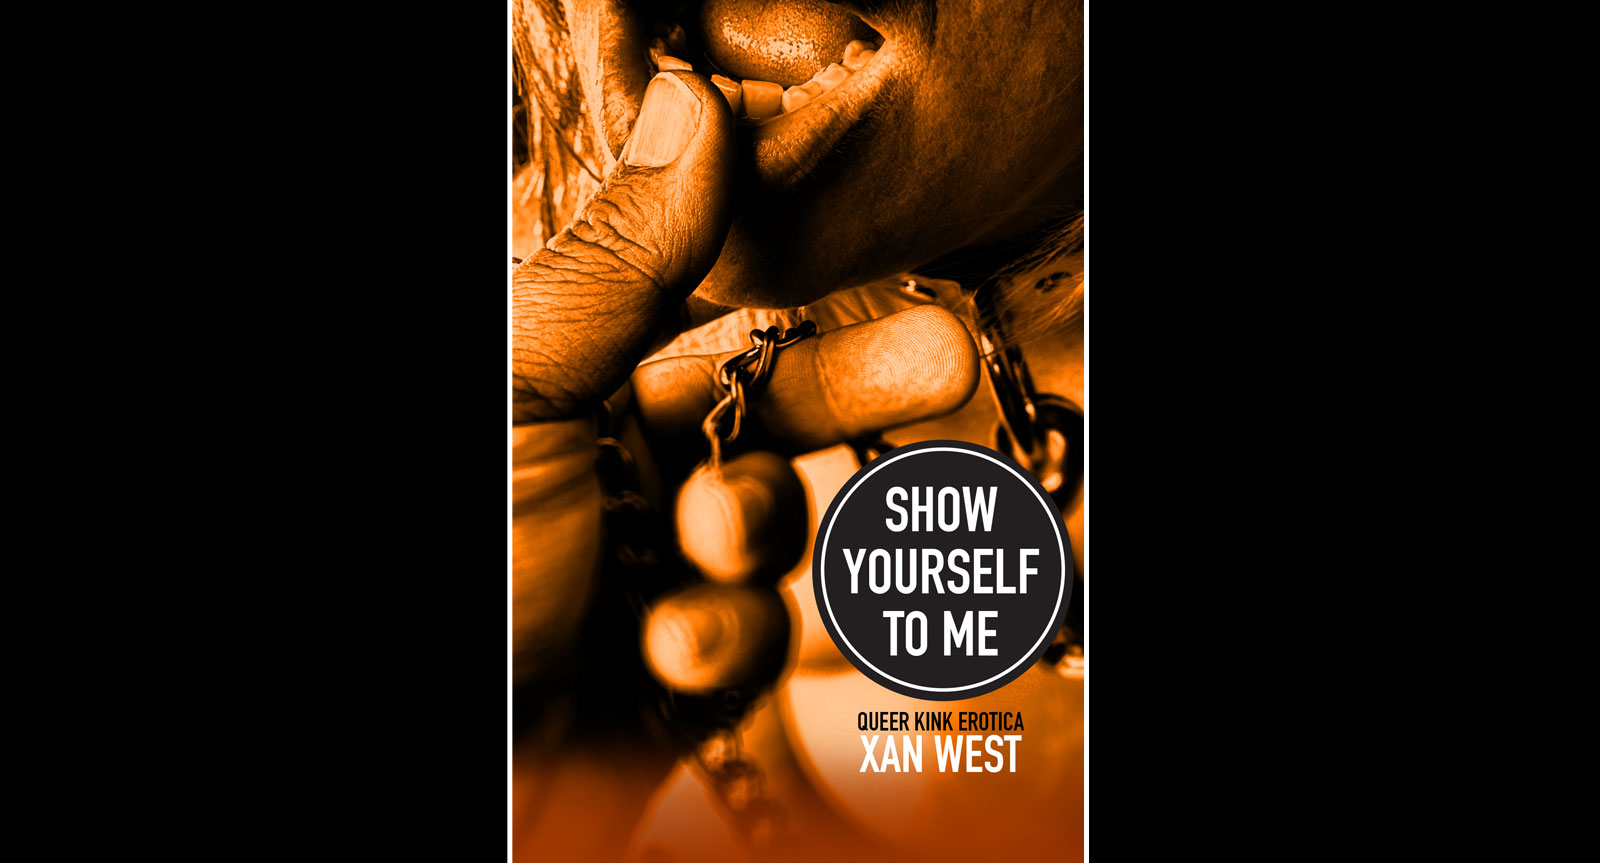 The Tender Sweet Young Thing, Guest Post by Xan West